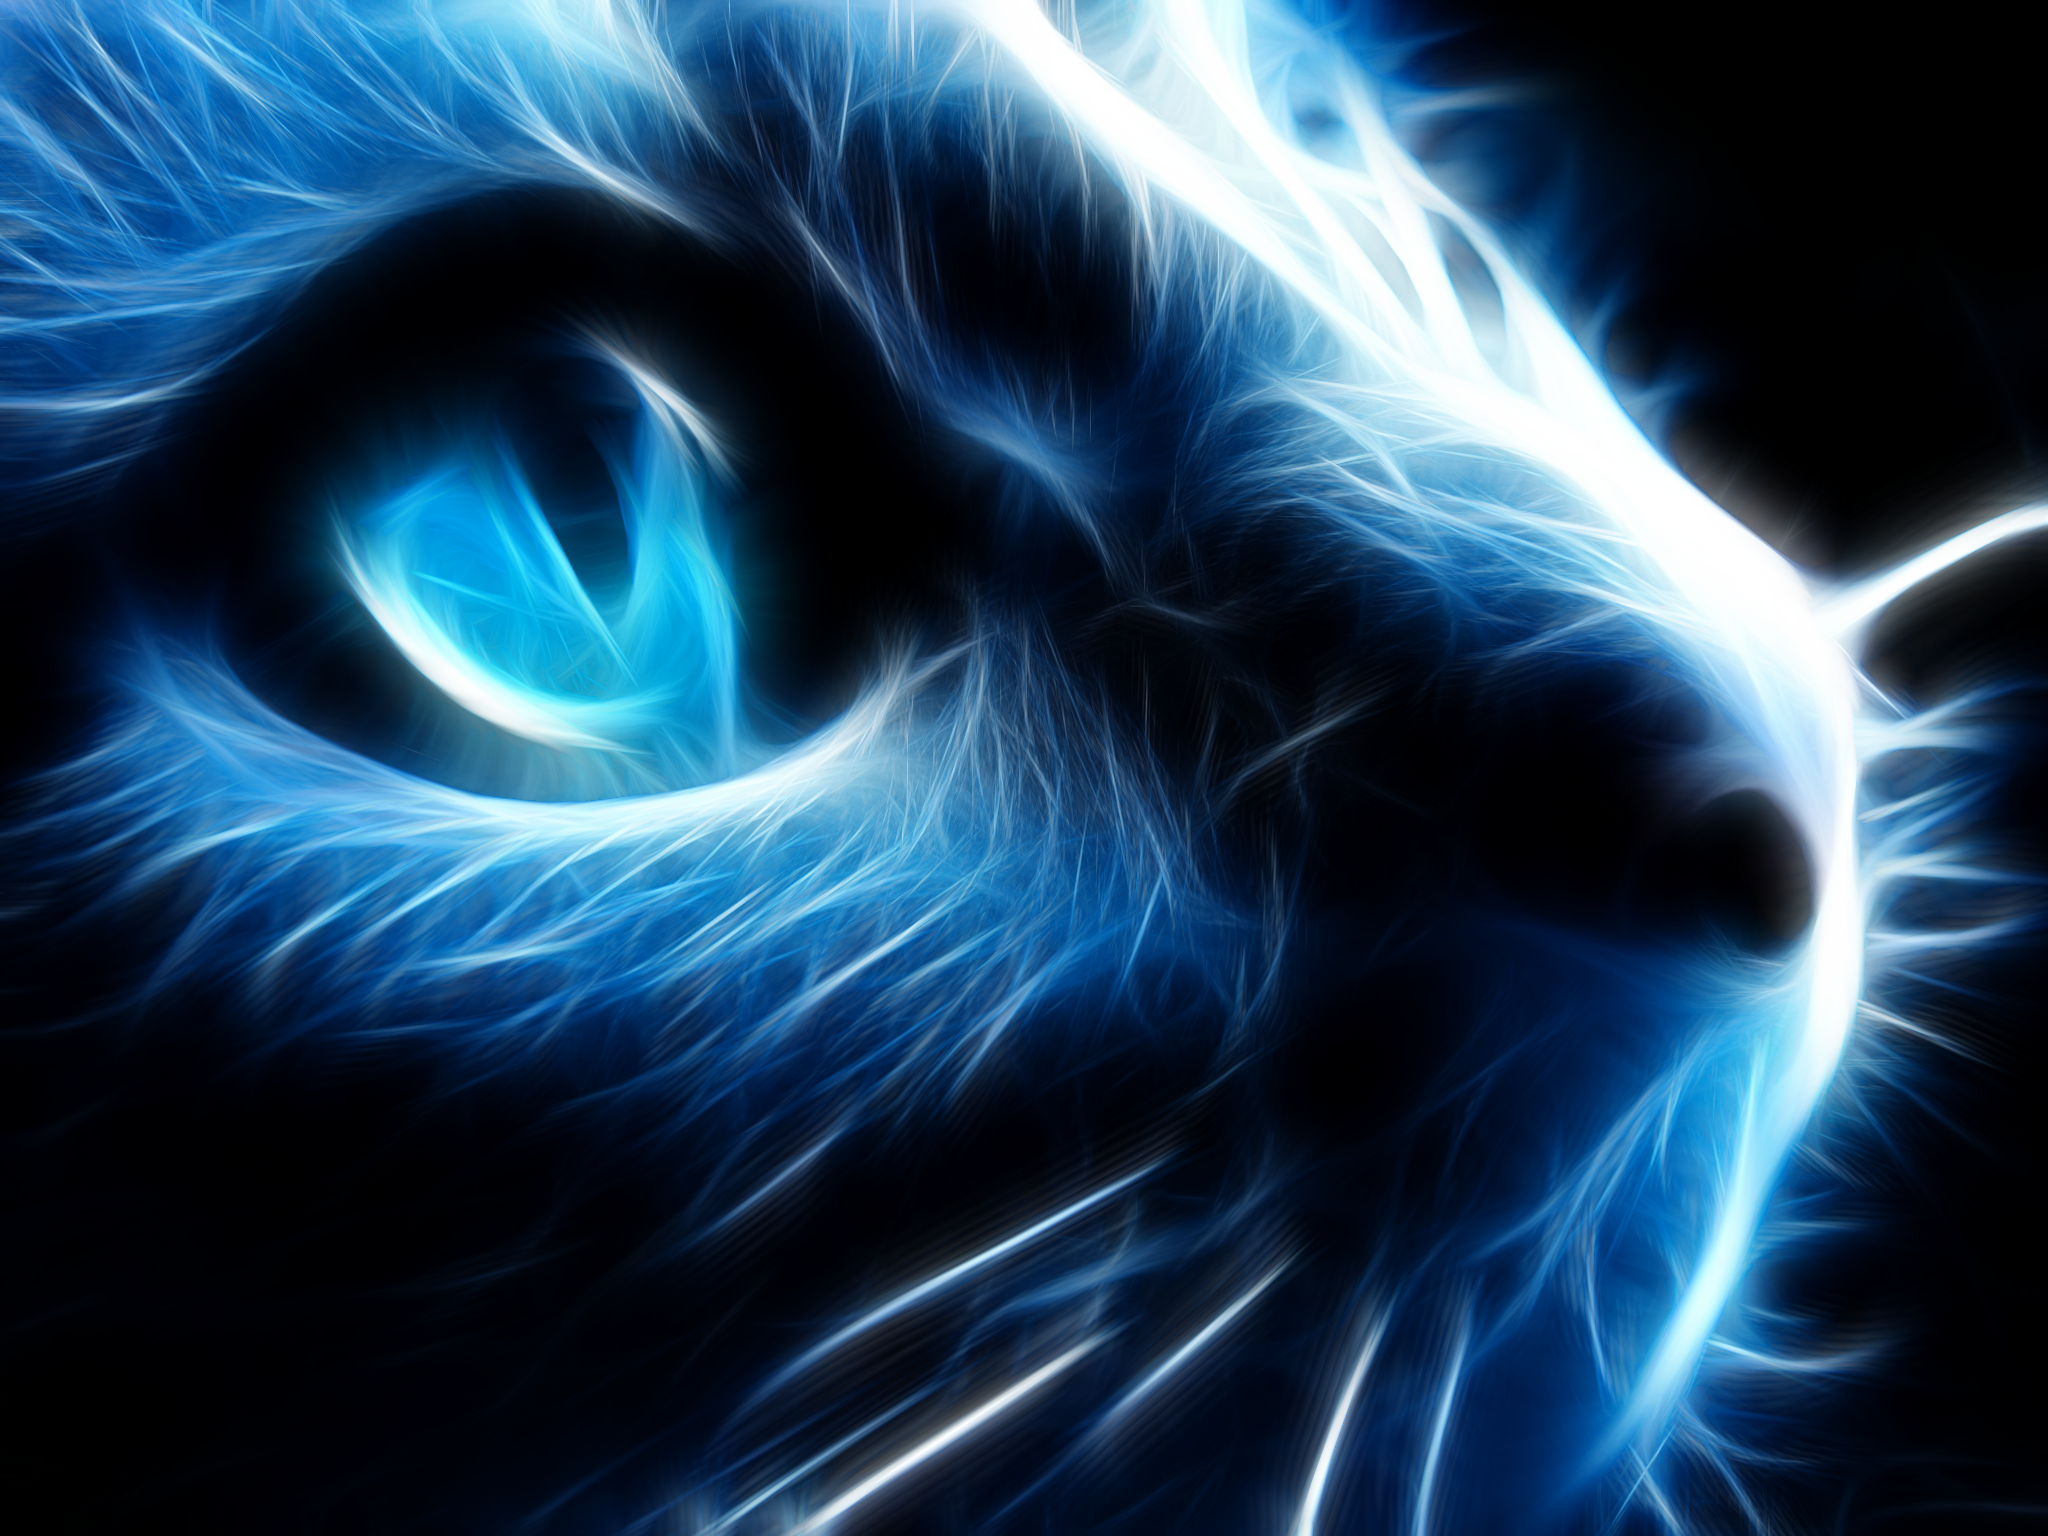 Cool Wallpaper Night Cat - night_cat_reloaded_by_l3viathan2142-d38r6h0  Photograph.png